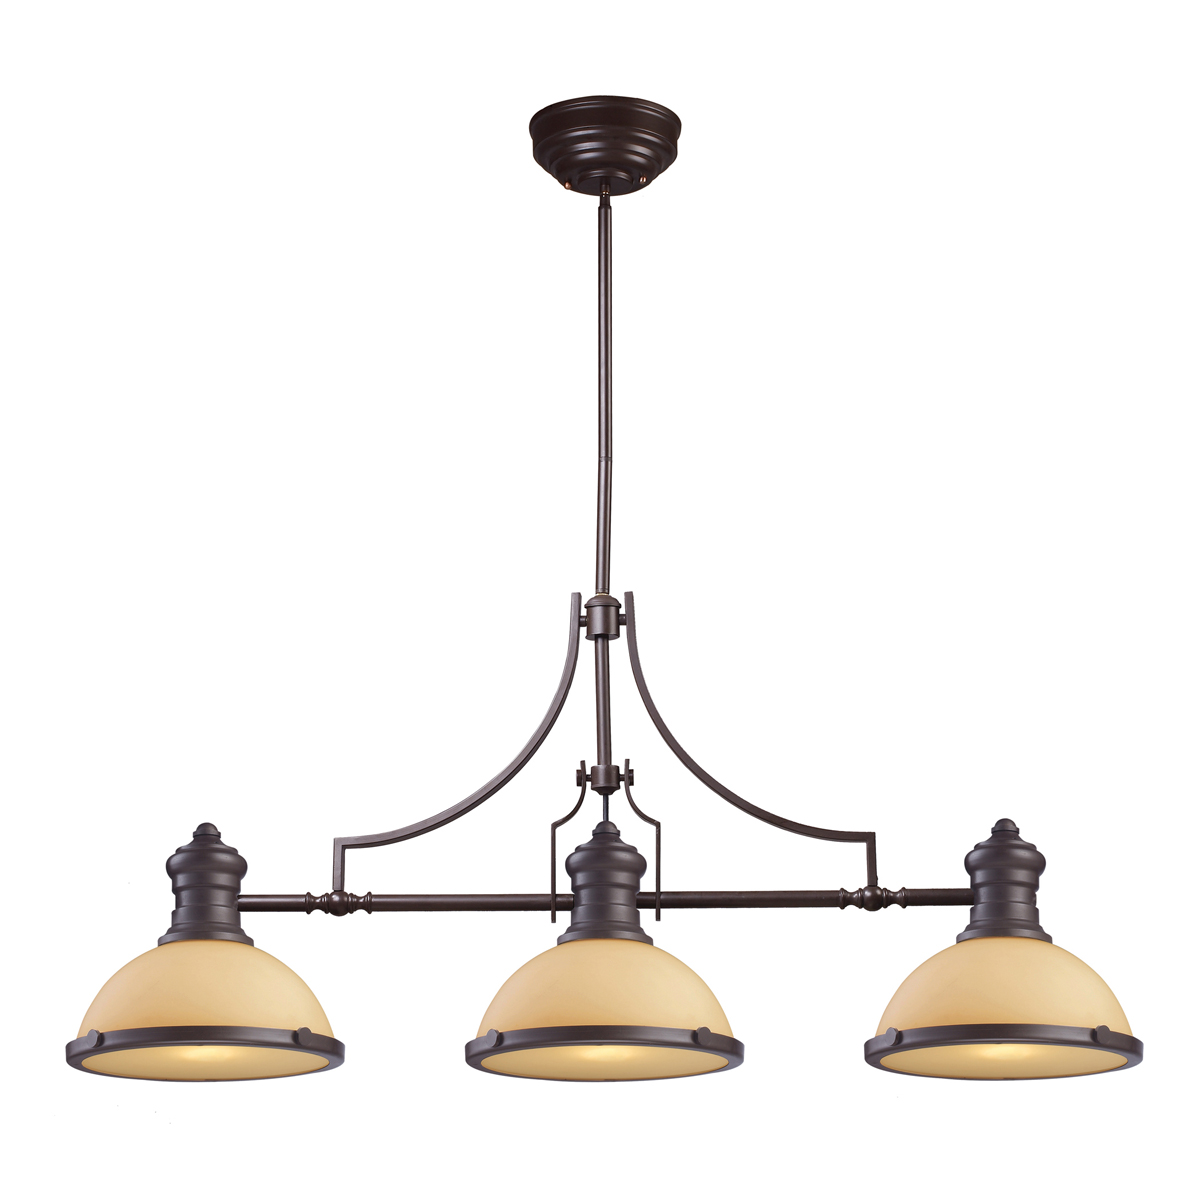 ELK Lighting (66235-3) Chadwick 3-Light Billiard/Island